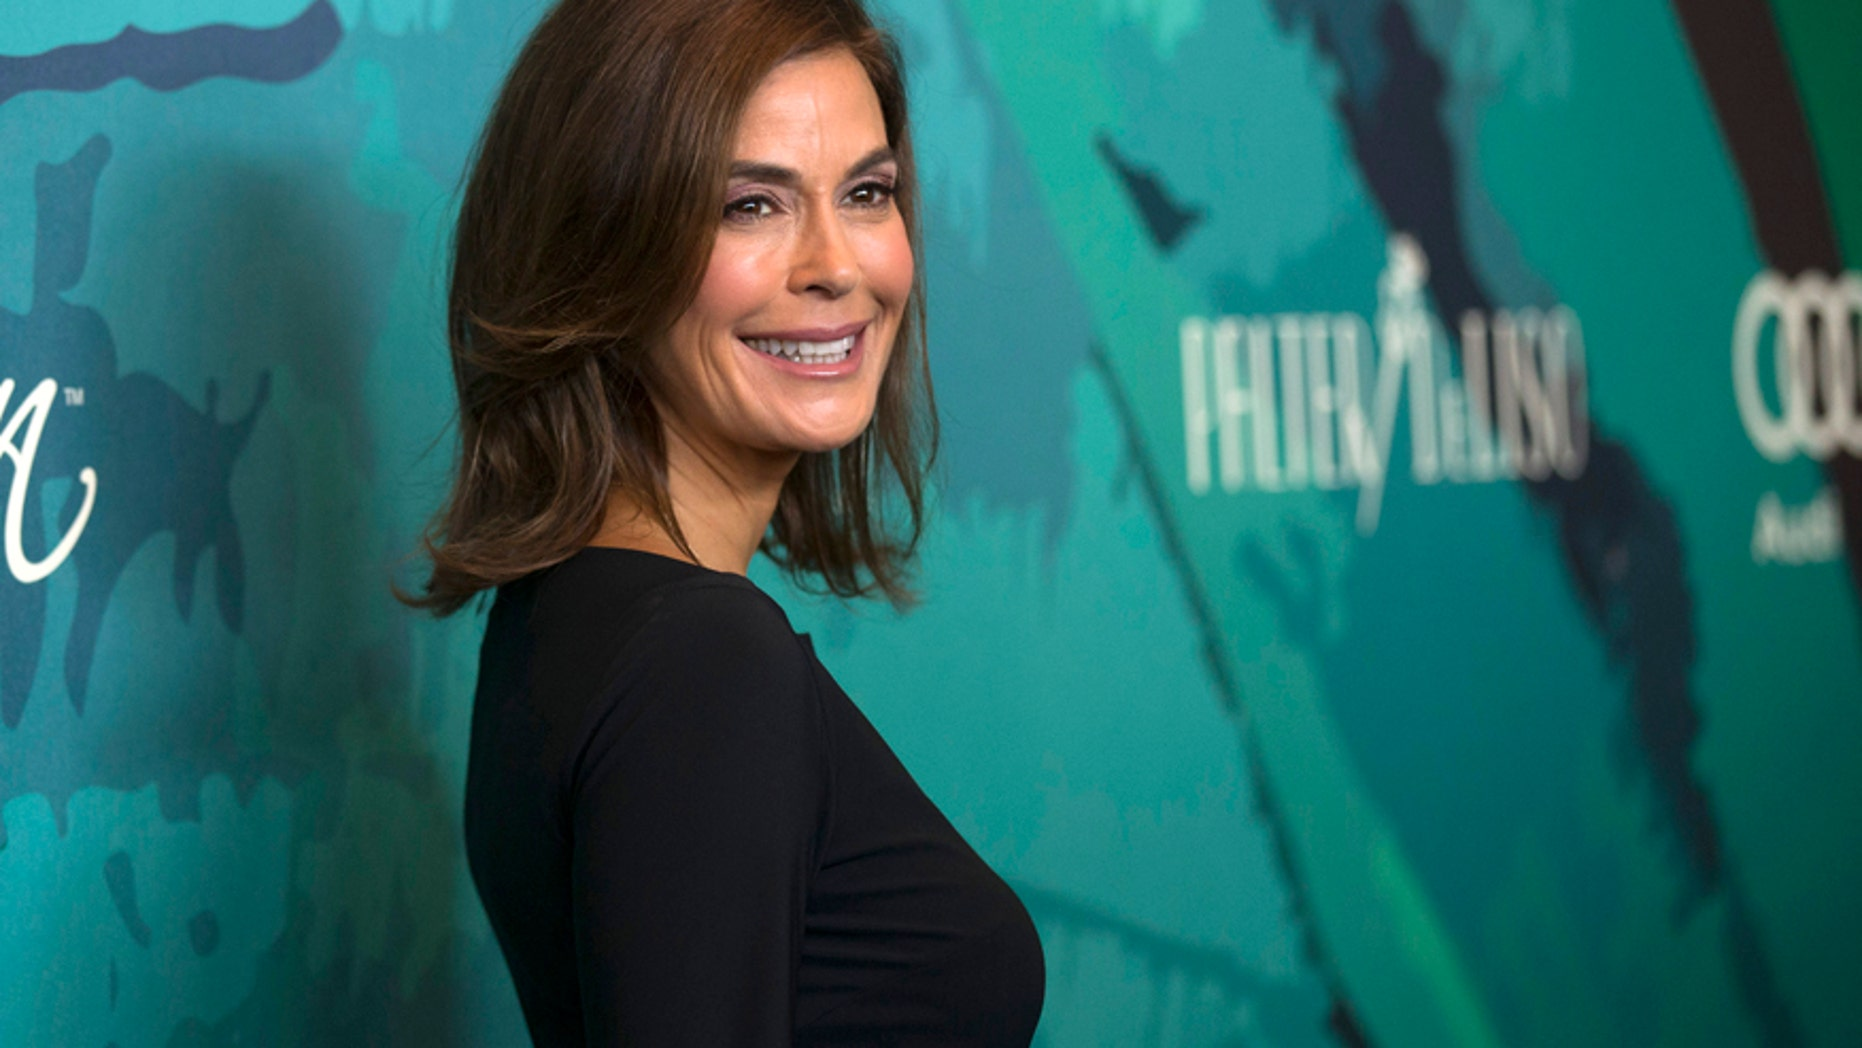 Actress Teri Hatcher poses at the seventh Variety's Power of Women luncheon at the Beverly Wilshire Hotel in Beverly Hills, California October 10, 2014.